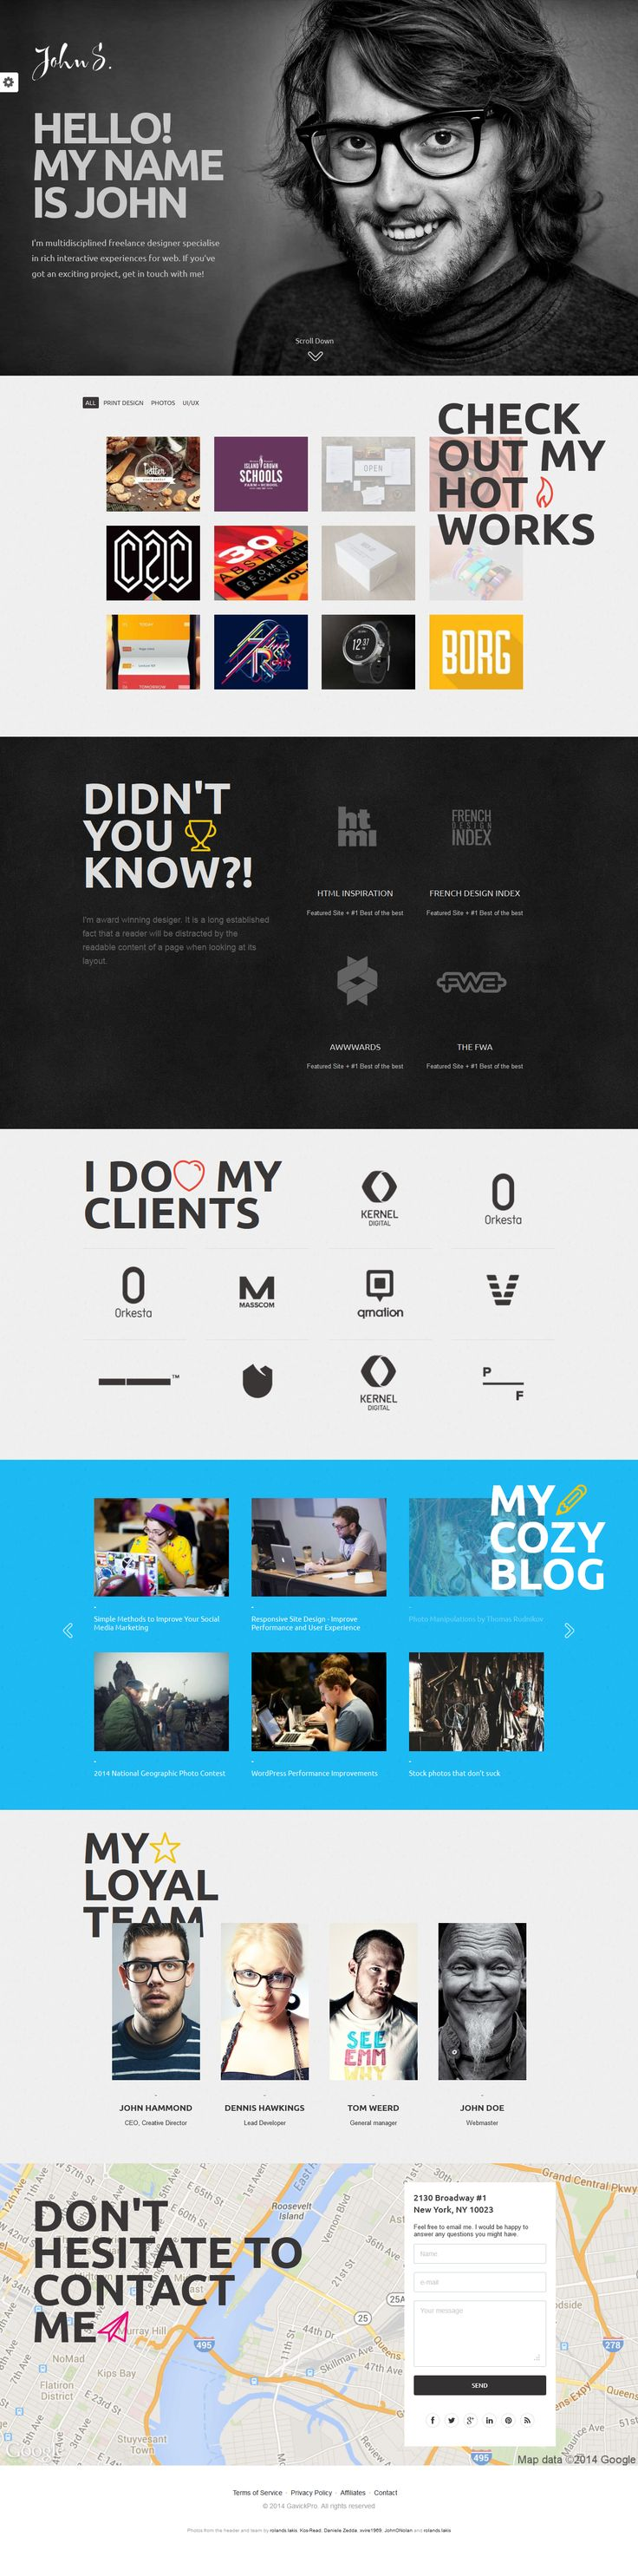 Cool Web Design on the Internet, John's Portfolio. #webdesign #webdevelopment #website @ http://www.pinterest.com/alfredchong/web-design/